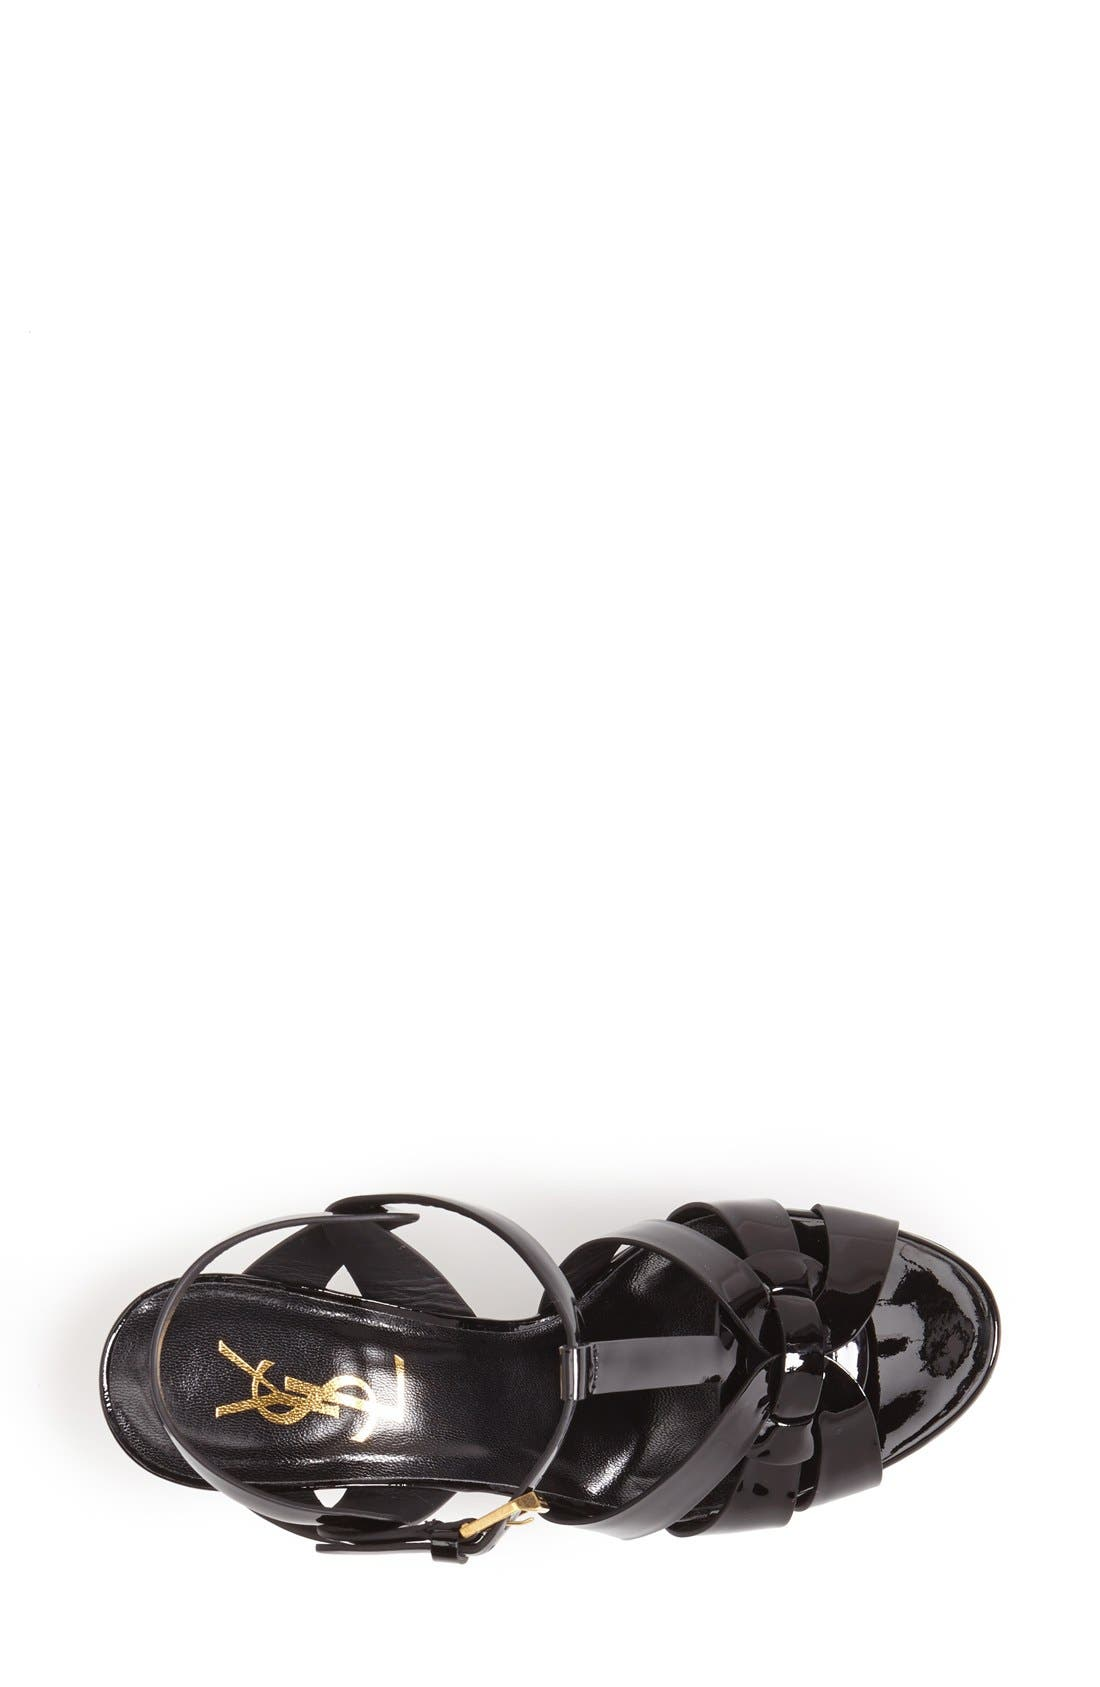 SAINT LAURENT, 'Tribute' T-Strap Sandal, Alternate thumbnail 3, color, BLACK